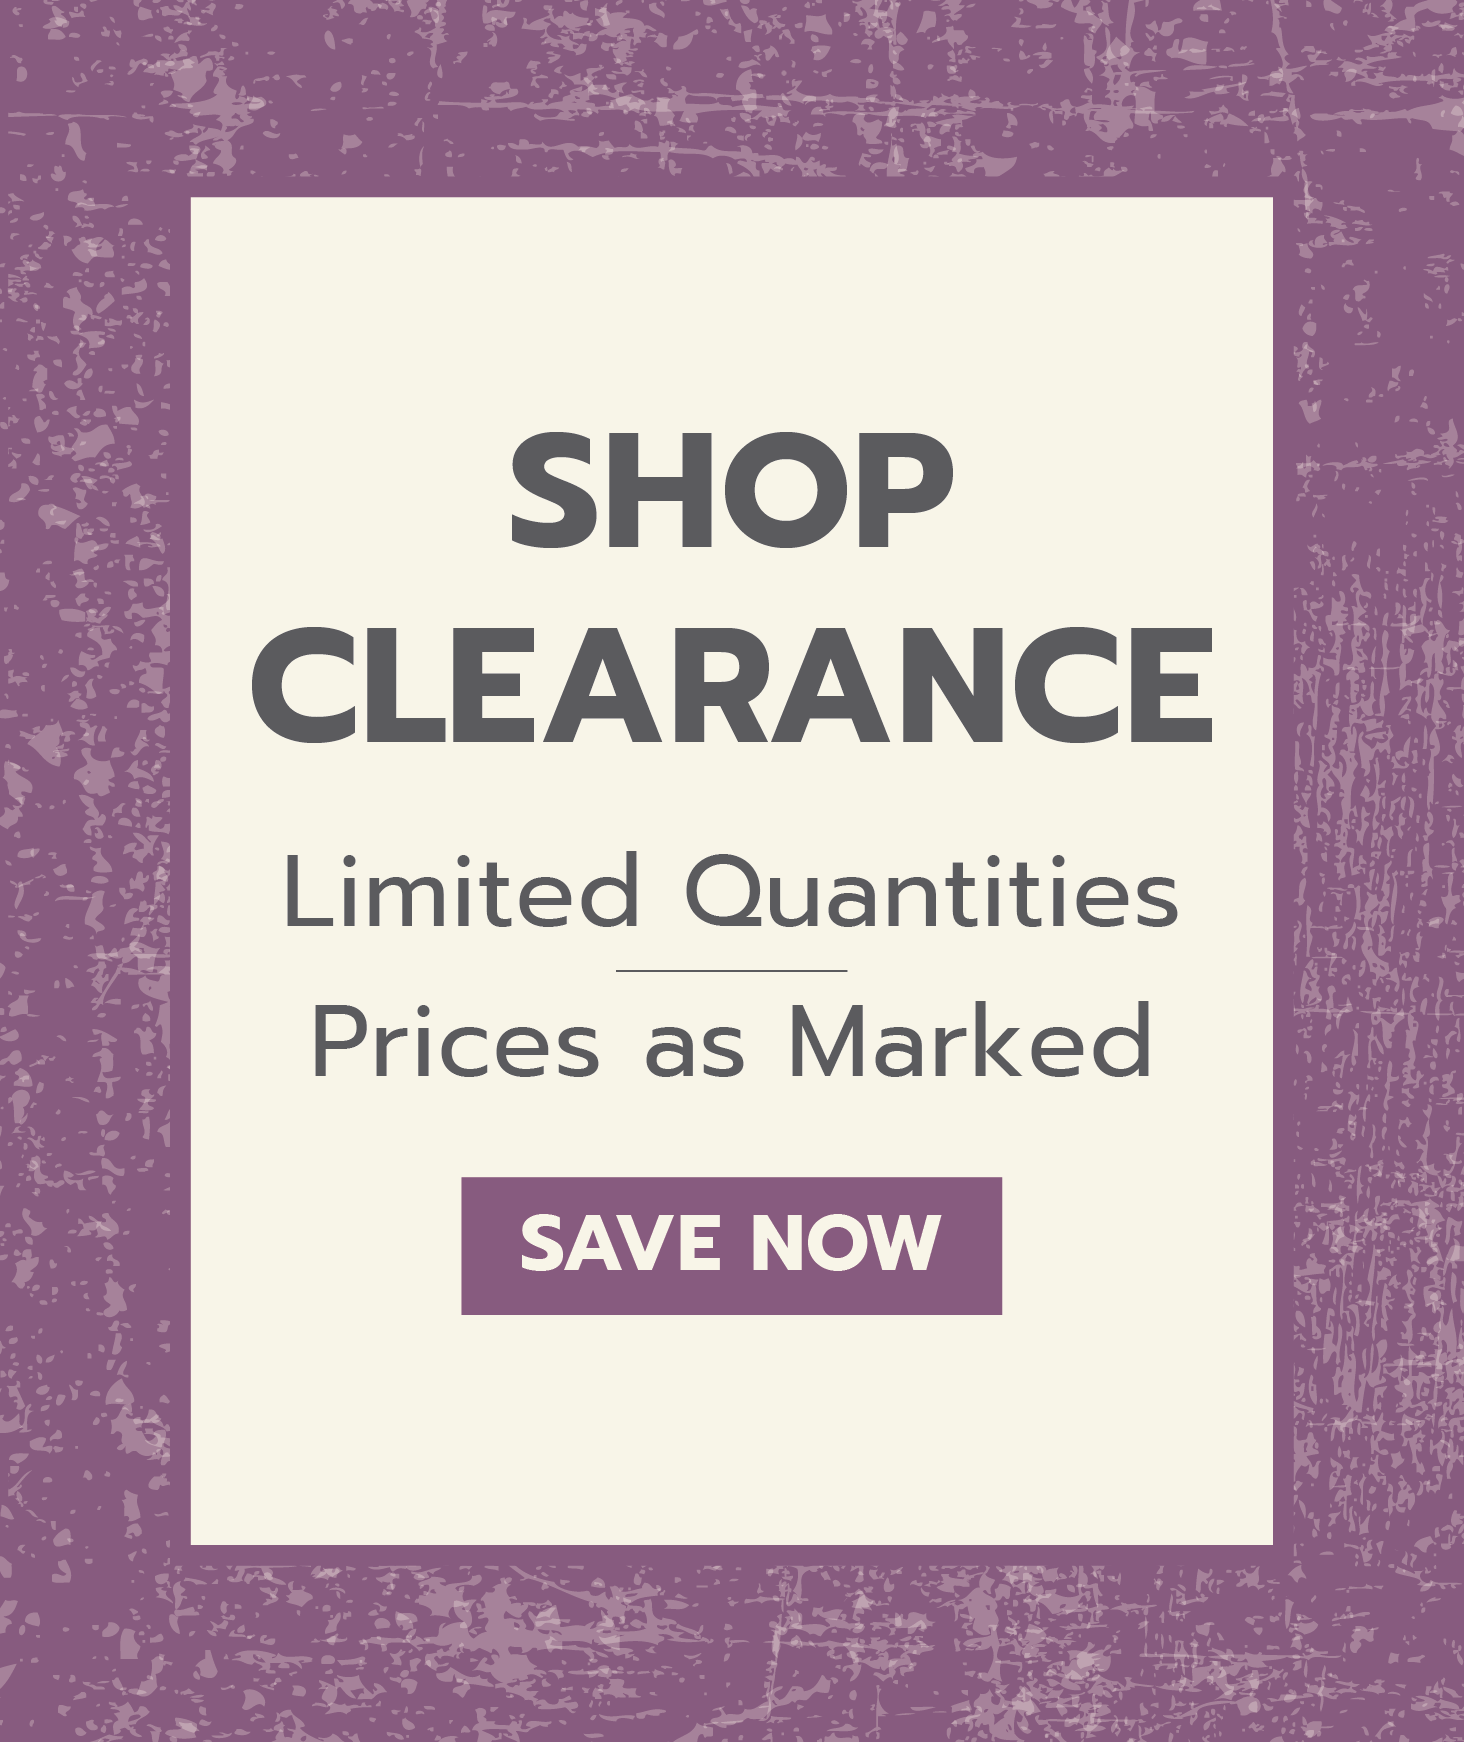 Shop clearance. Limited quantities. Prices as marked. Save now.